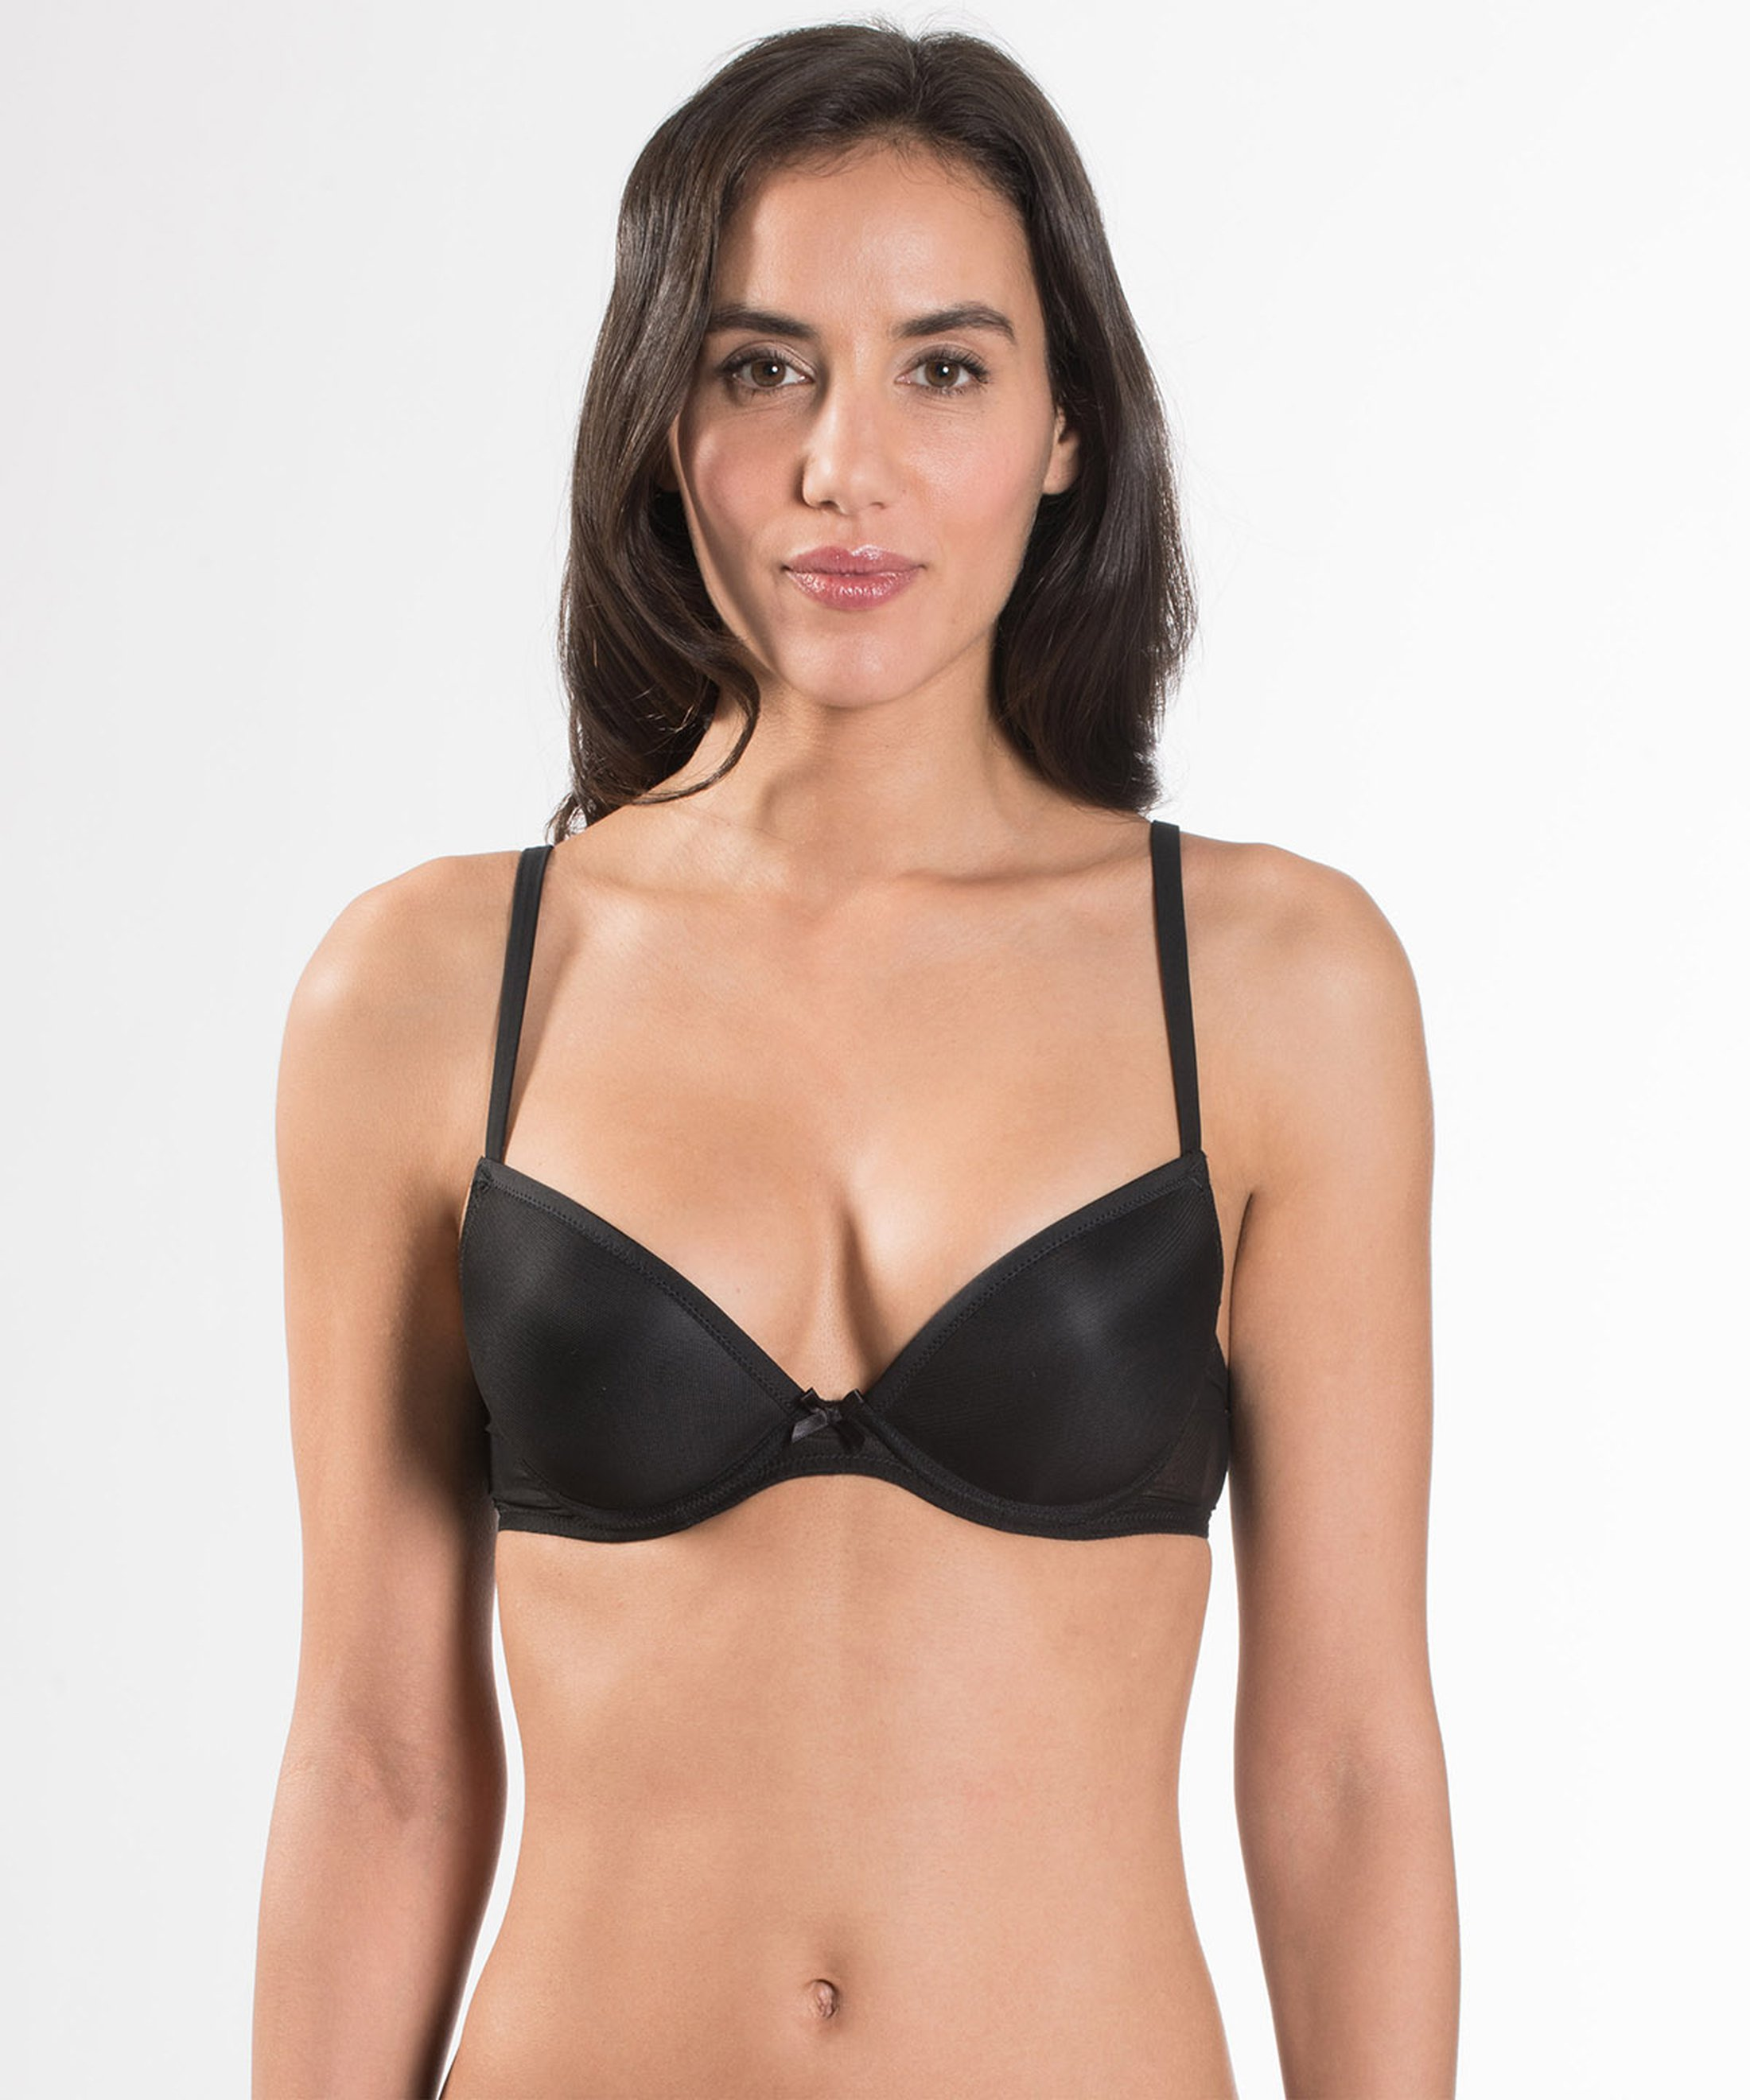 NUDESSENCE Moulded Push up Bra Black | Aubade